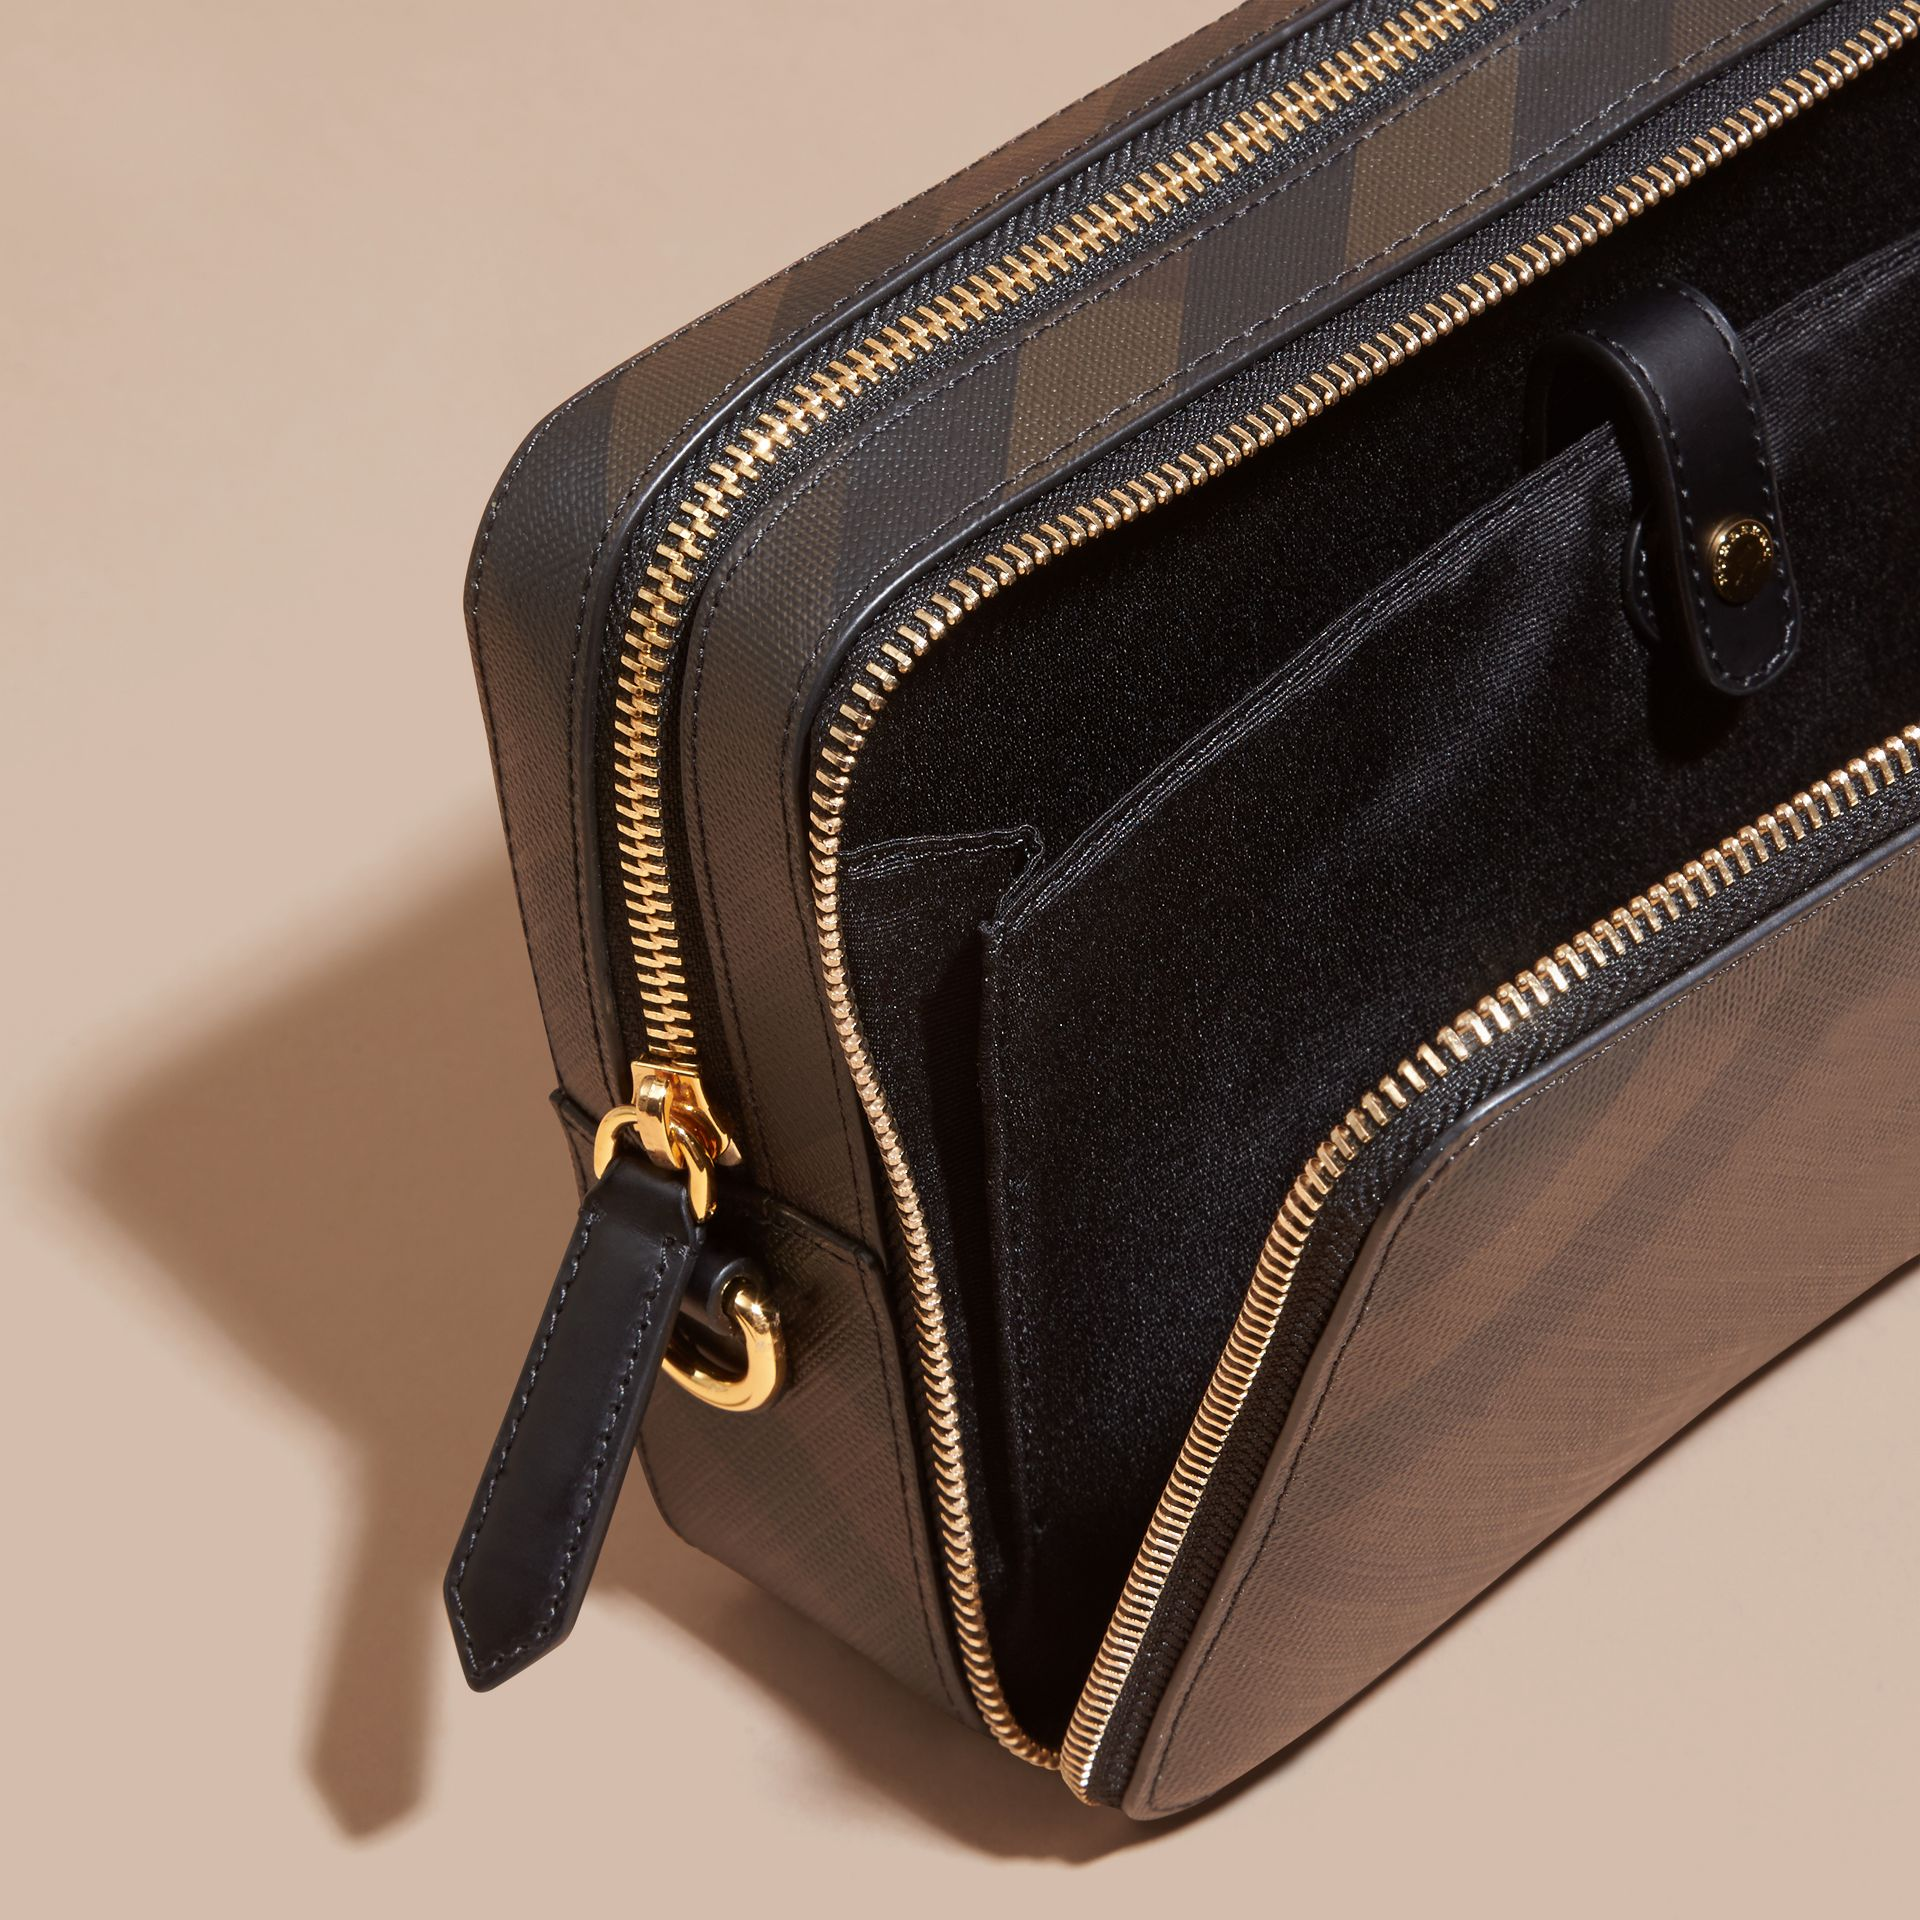 Leather-trimmed London Check Pouch in Chocolate/black - Men | Burberry - gallery image 4